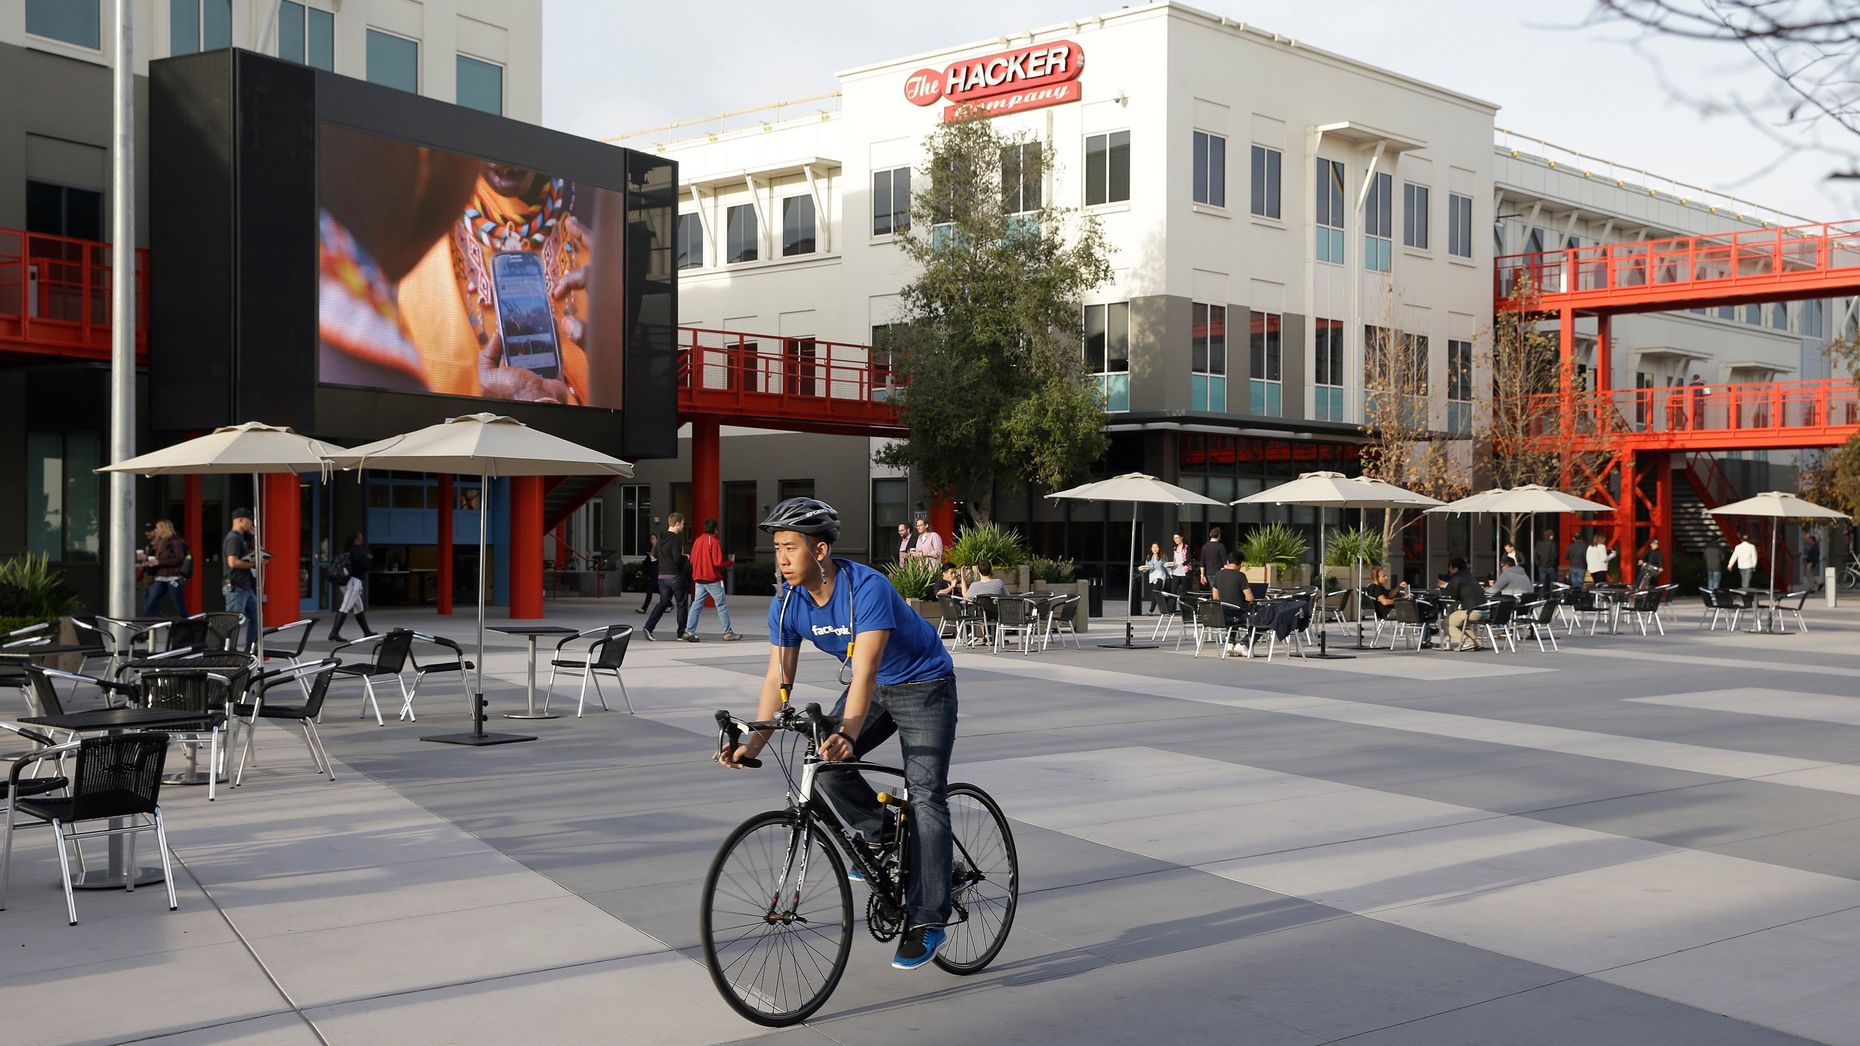 Facebook's Menlo Park campus. Photo by AP.